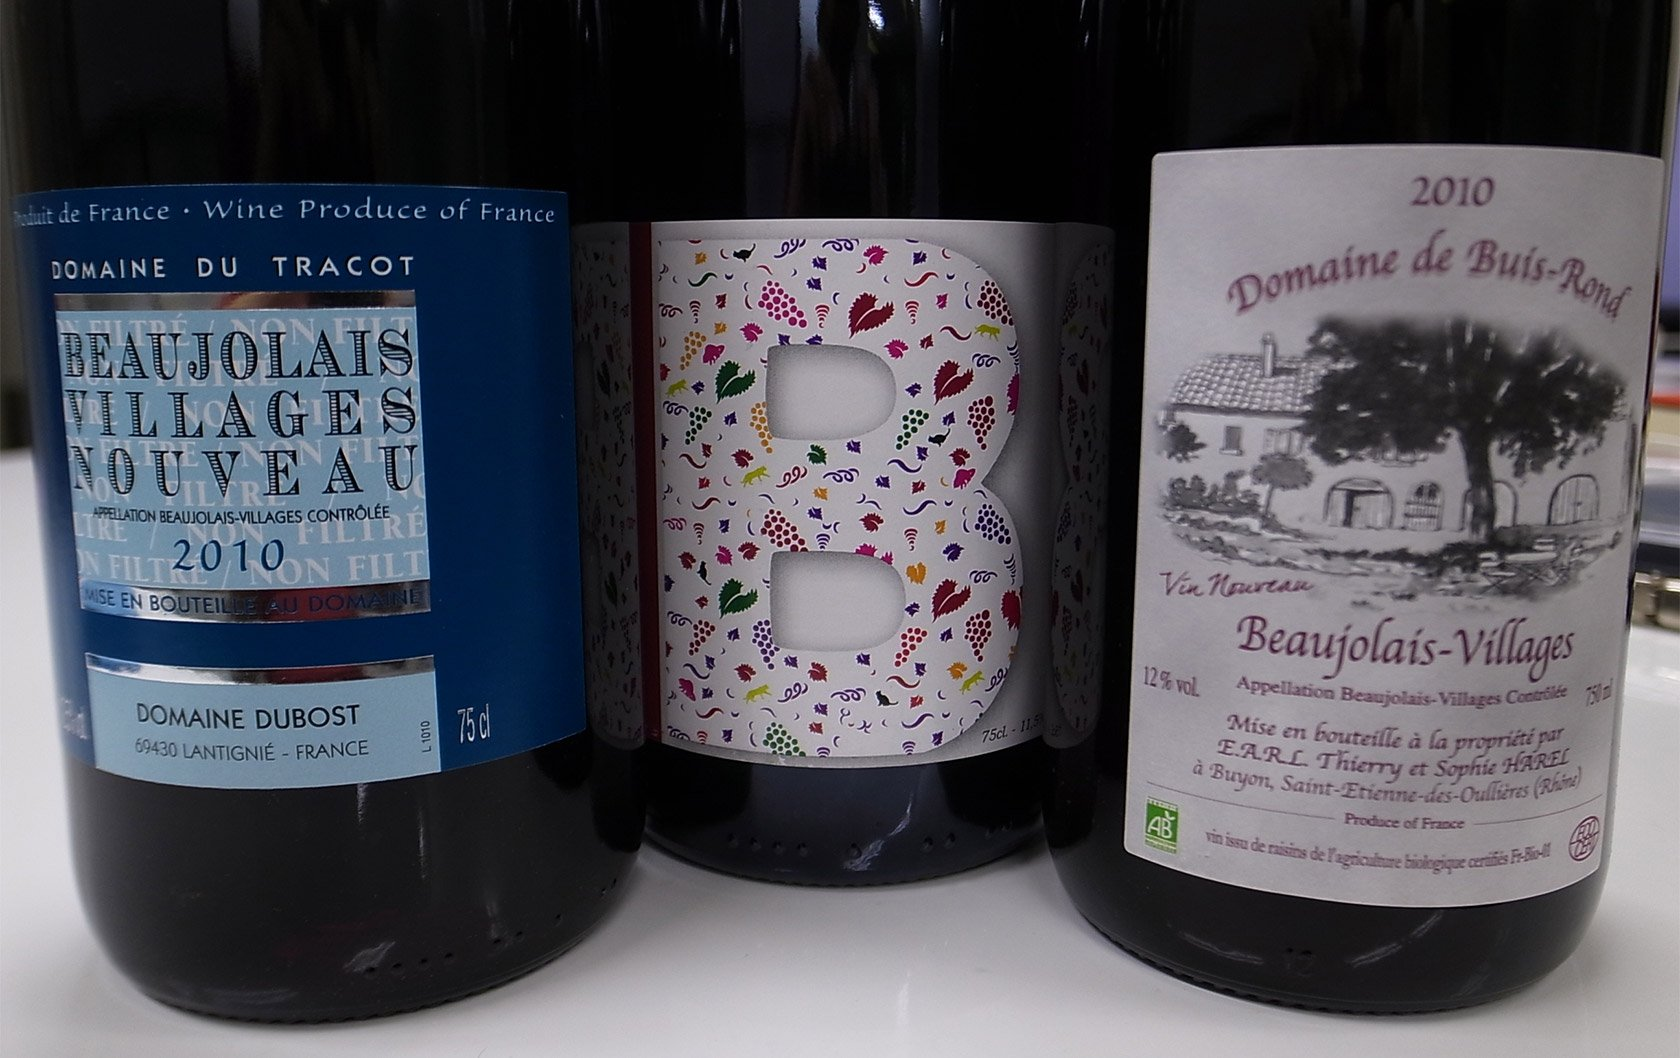 Release of the Beaujolais Nouveau